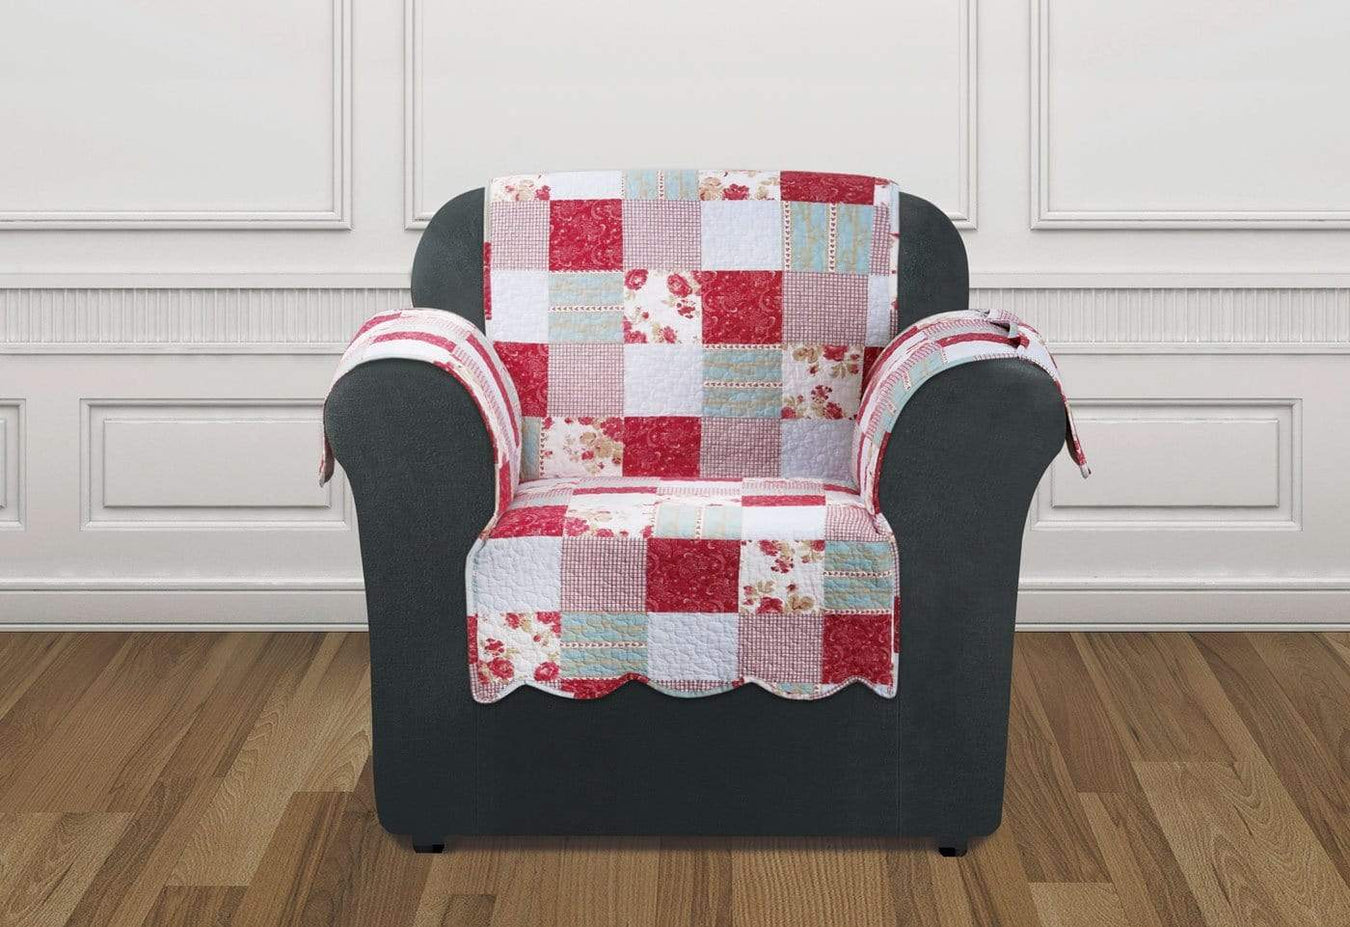 Prime Heirloom Quilt Chair Furniture Cover Chair Covers Covers Machost Co Dining Chair Design Ideas Machostcouk